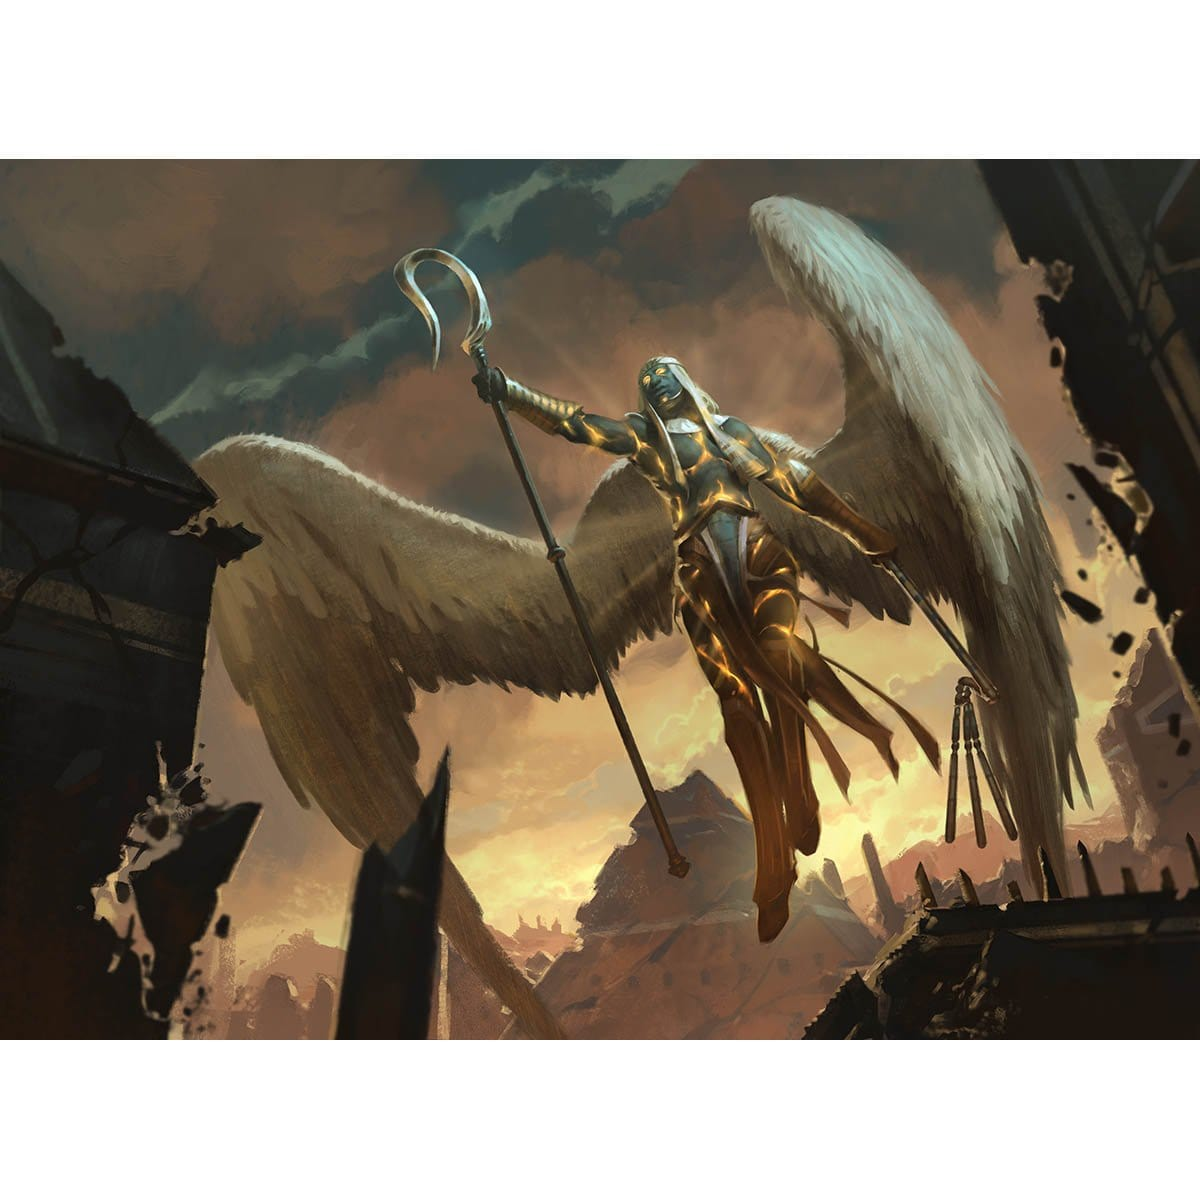 Angel of Condemnation Print - Print - Original Magic Art - Accessories for Magic the Gathering and other card games